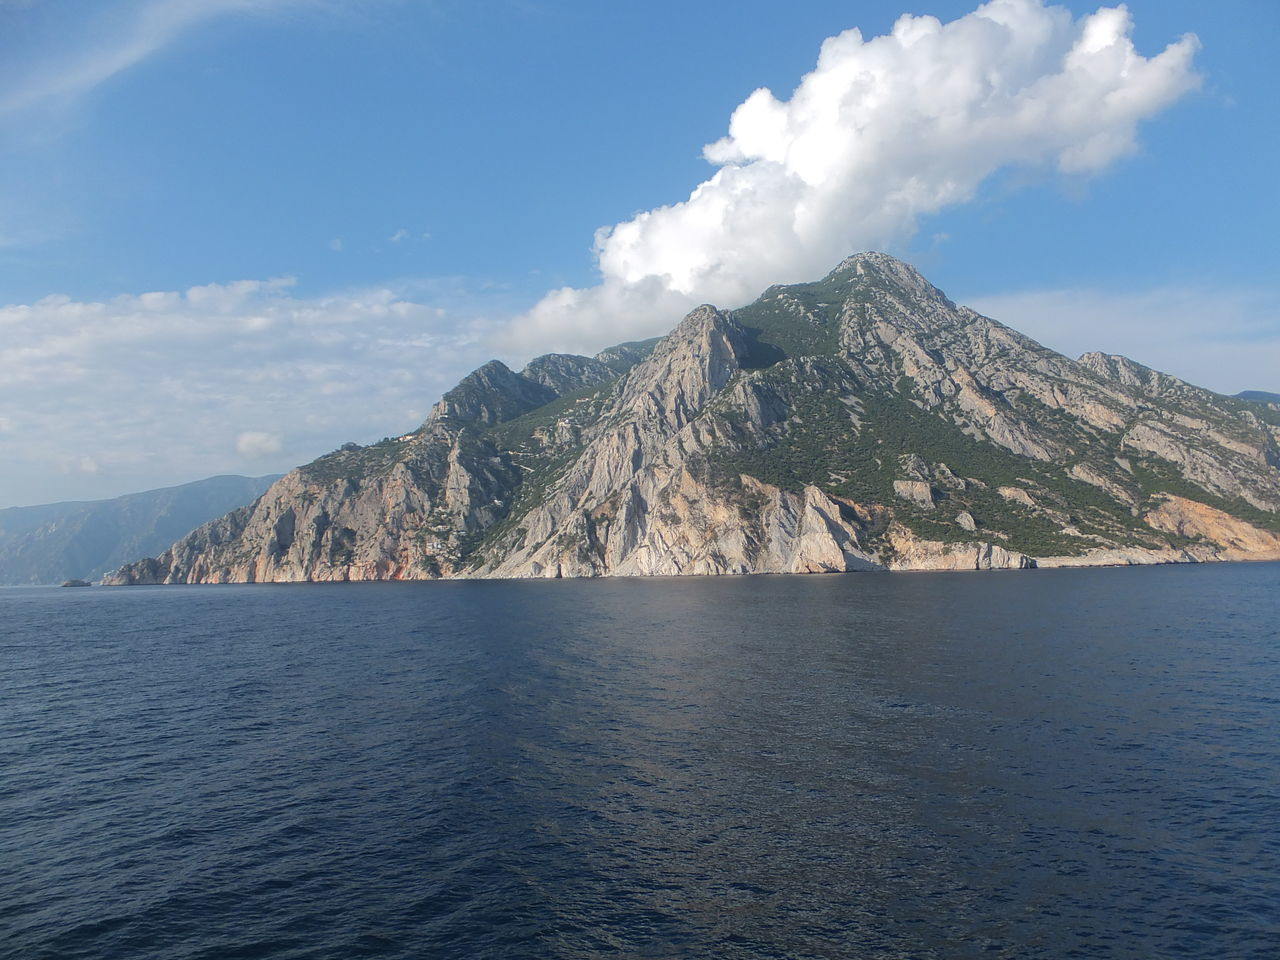 Mount Athos Beauty In Nature Blue Sky White Clouds Cliff Geology Greece Hill Landscape Majestic Mount Athos Mountain Mountain Range Outdoors Physical Geography Religion Remote Ripples Rock Rock Formation Sacred Place Scenics Sea Tranquil Scene Tranquility Voyage Waves